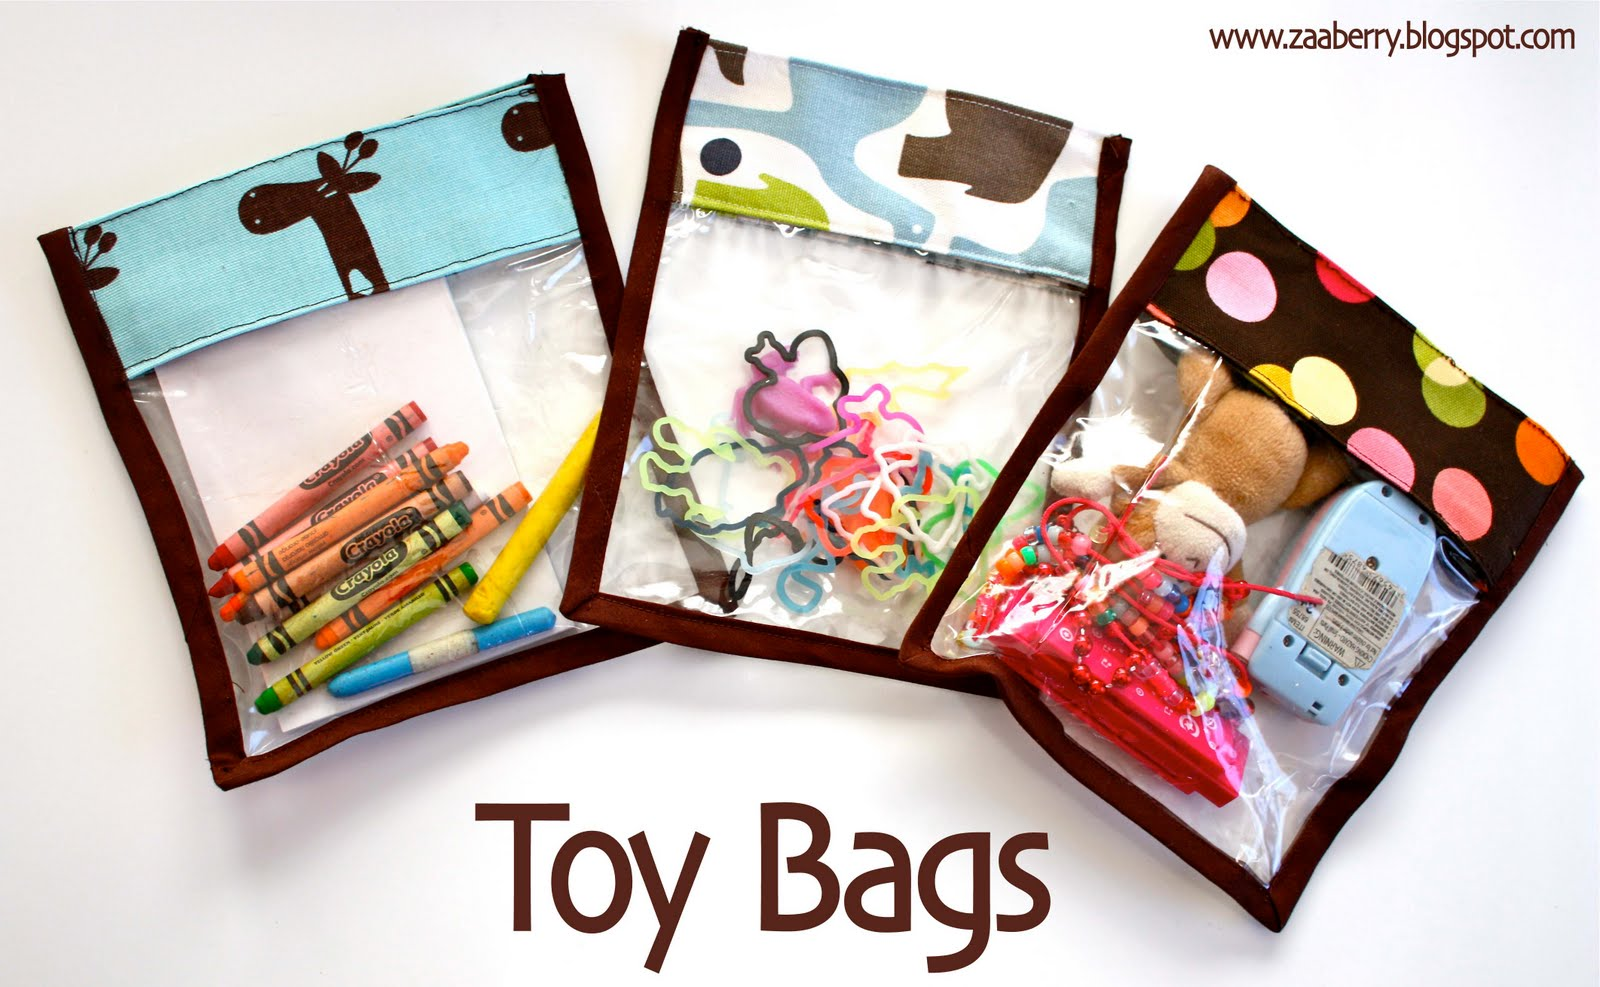 Bag Of Toys : Zaaberry toy bag tutorial